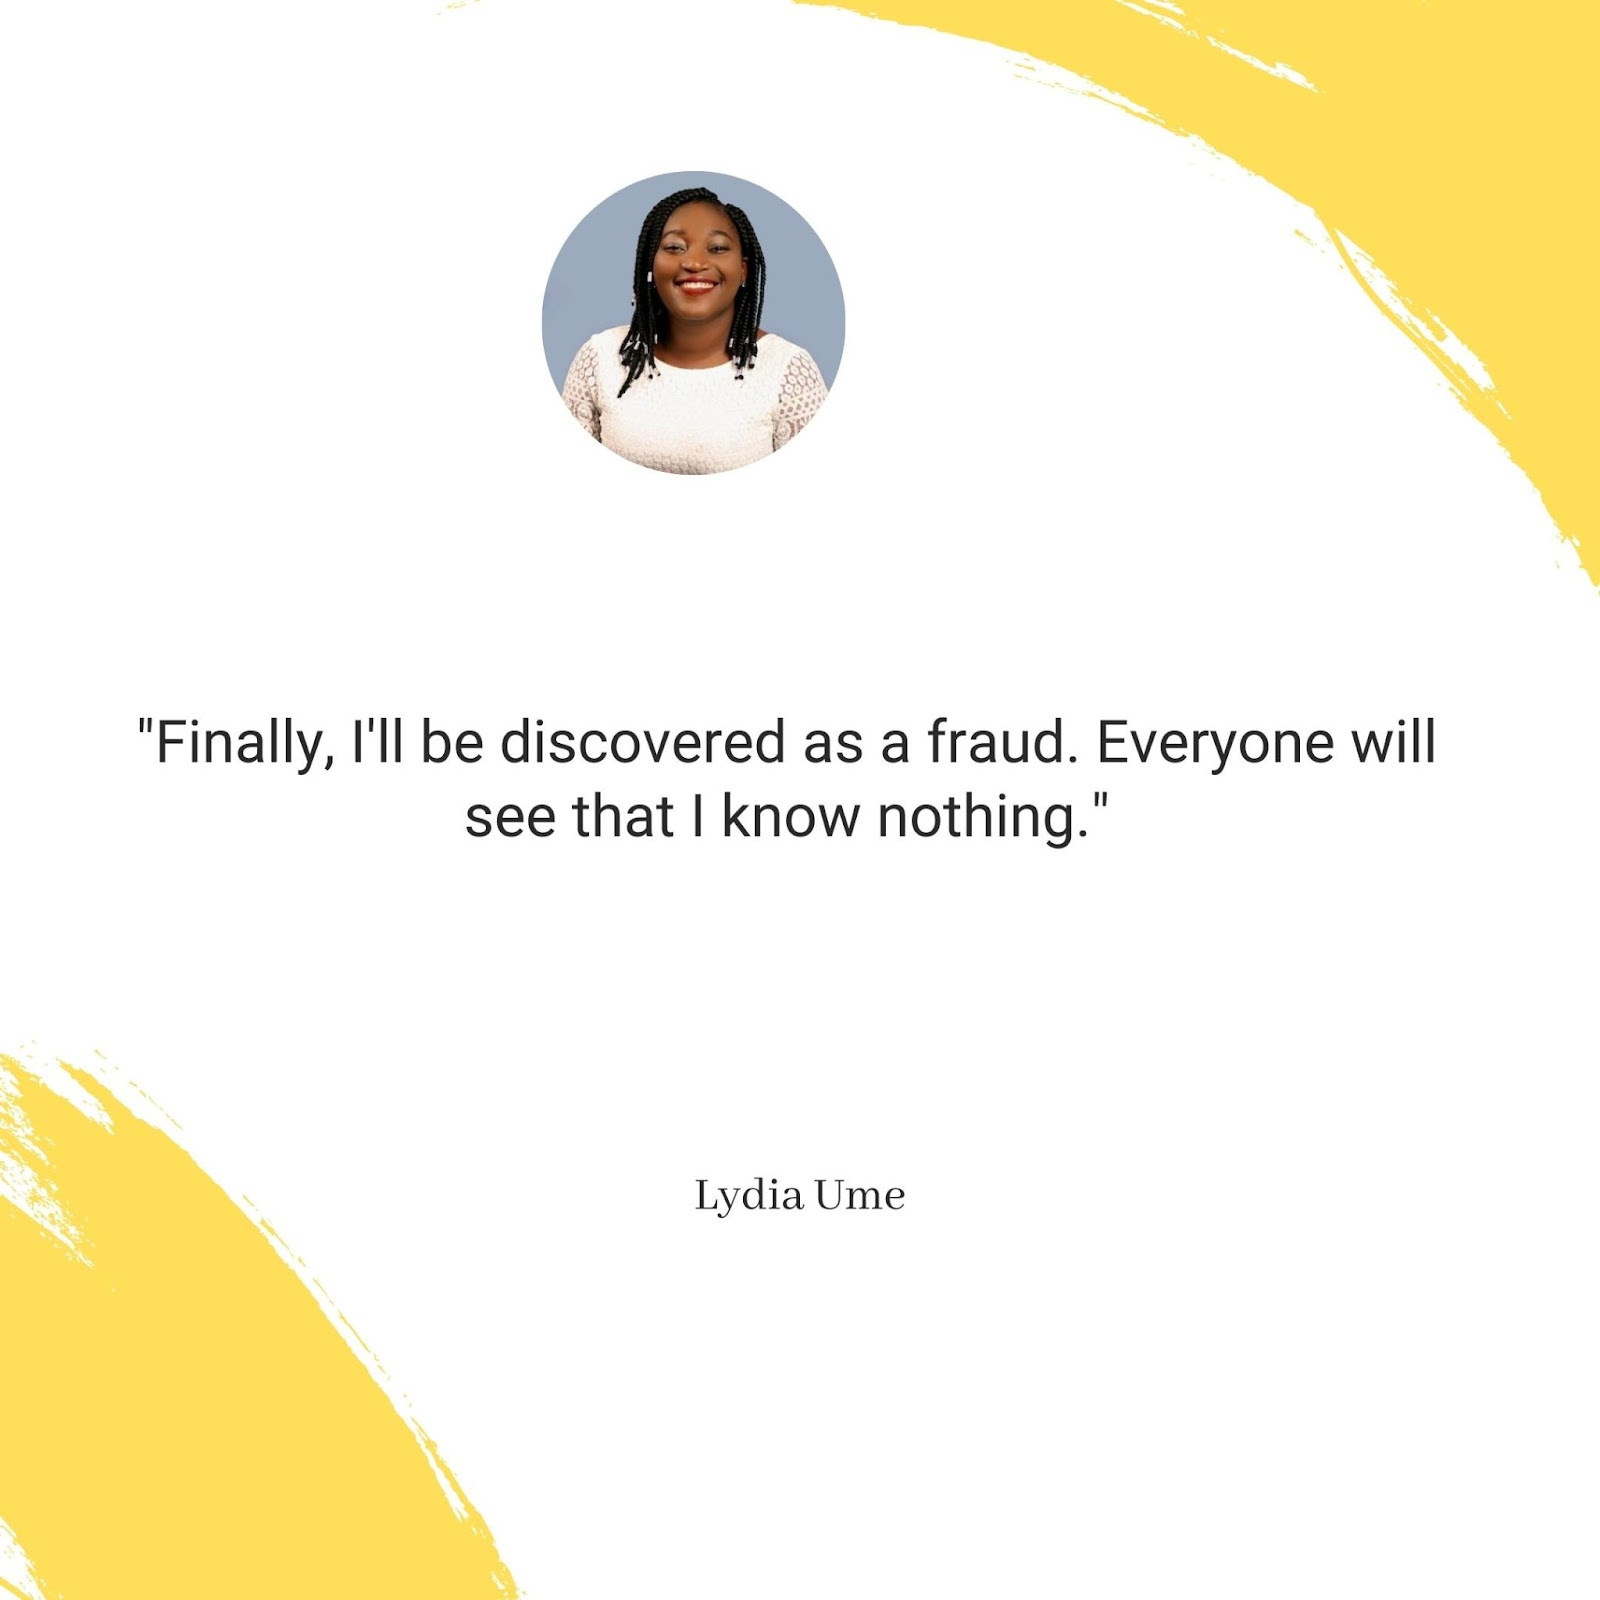 Lydia thought she was a fraud and suffered self doubt